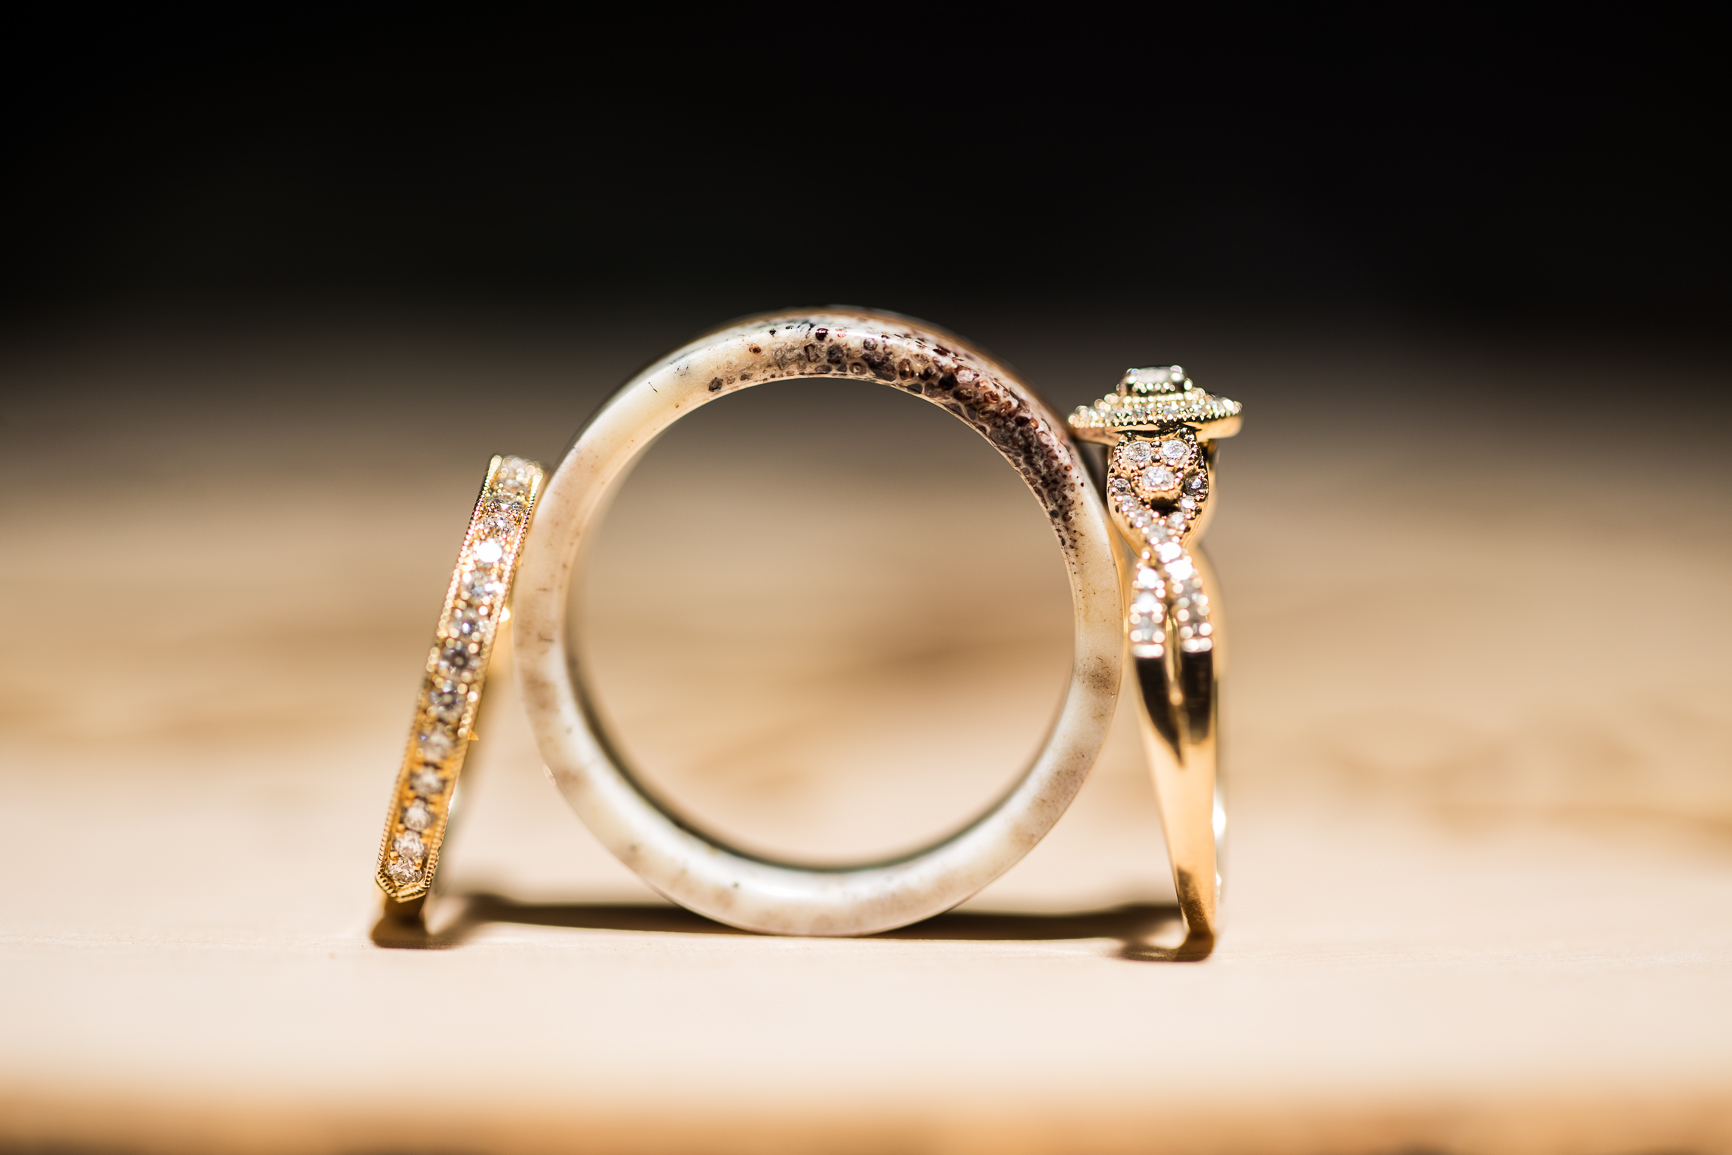 101 studio llc - Wedding rings detail 11.jpg